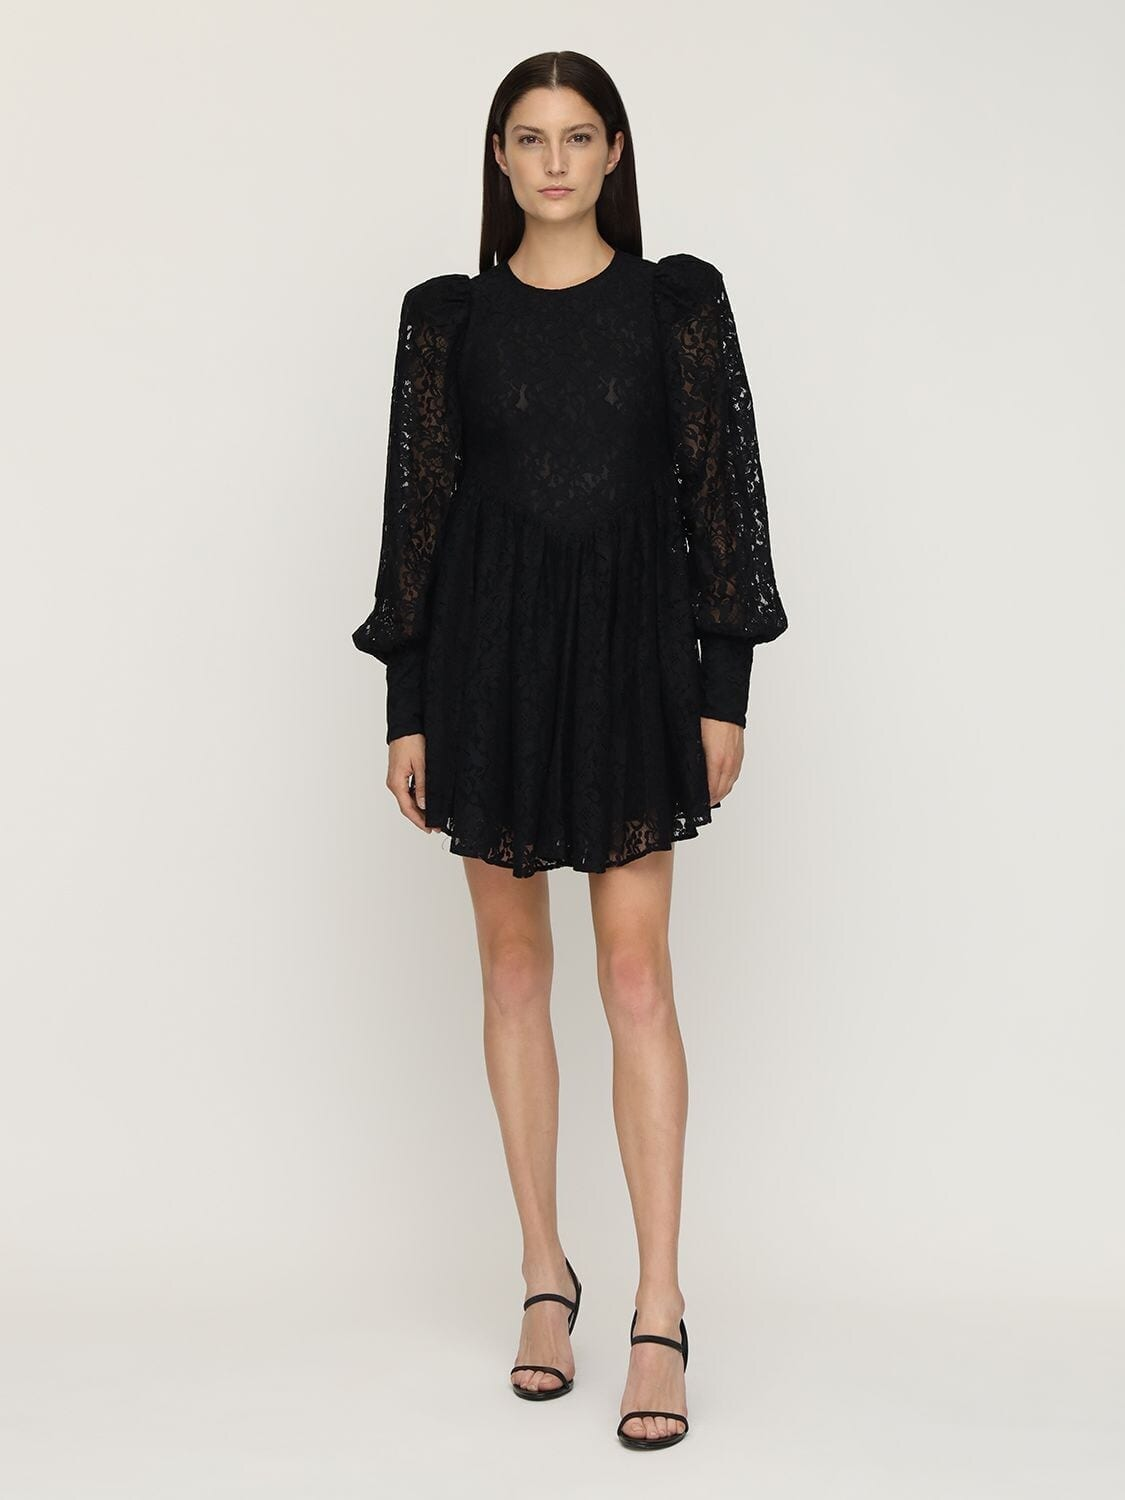 ROTATE Alison Cotton Blend Lace Mini Dress